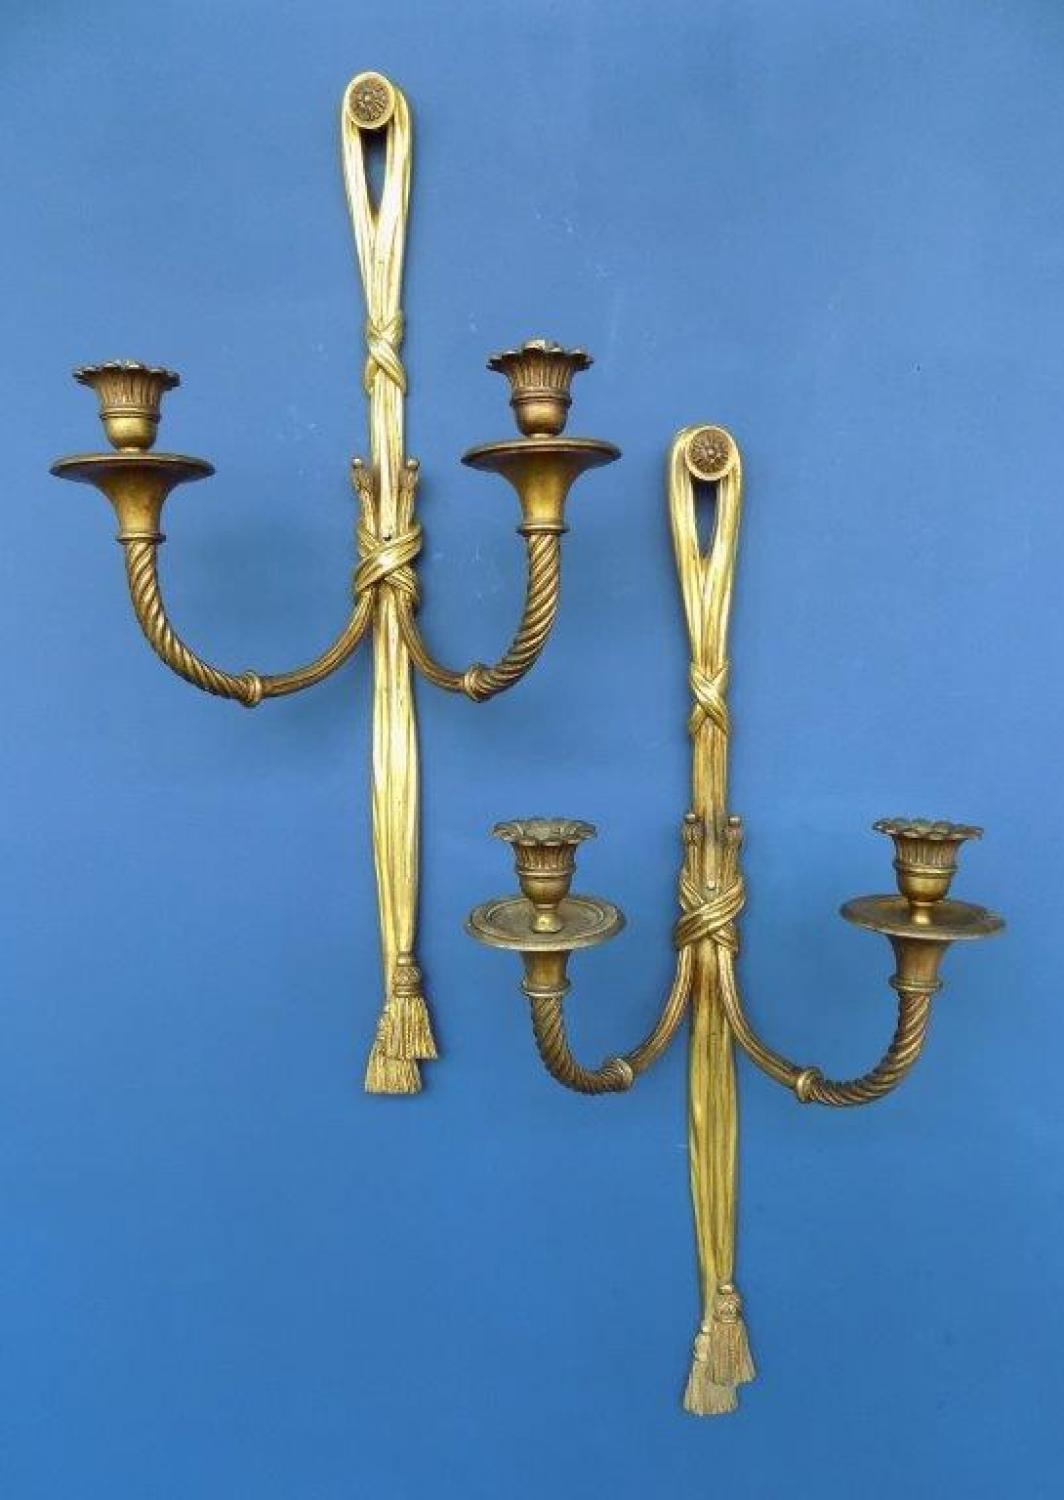 French Neoclassical sconces